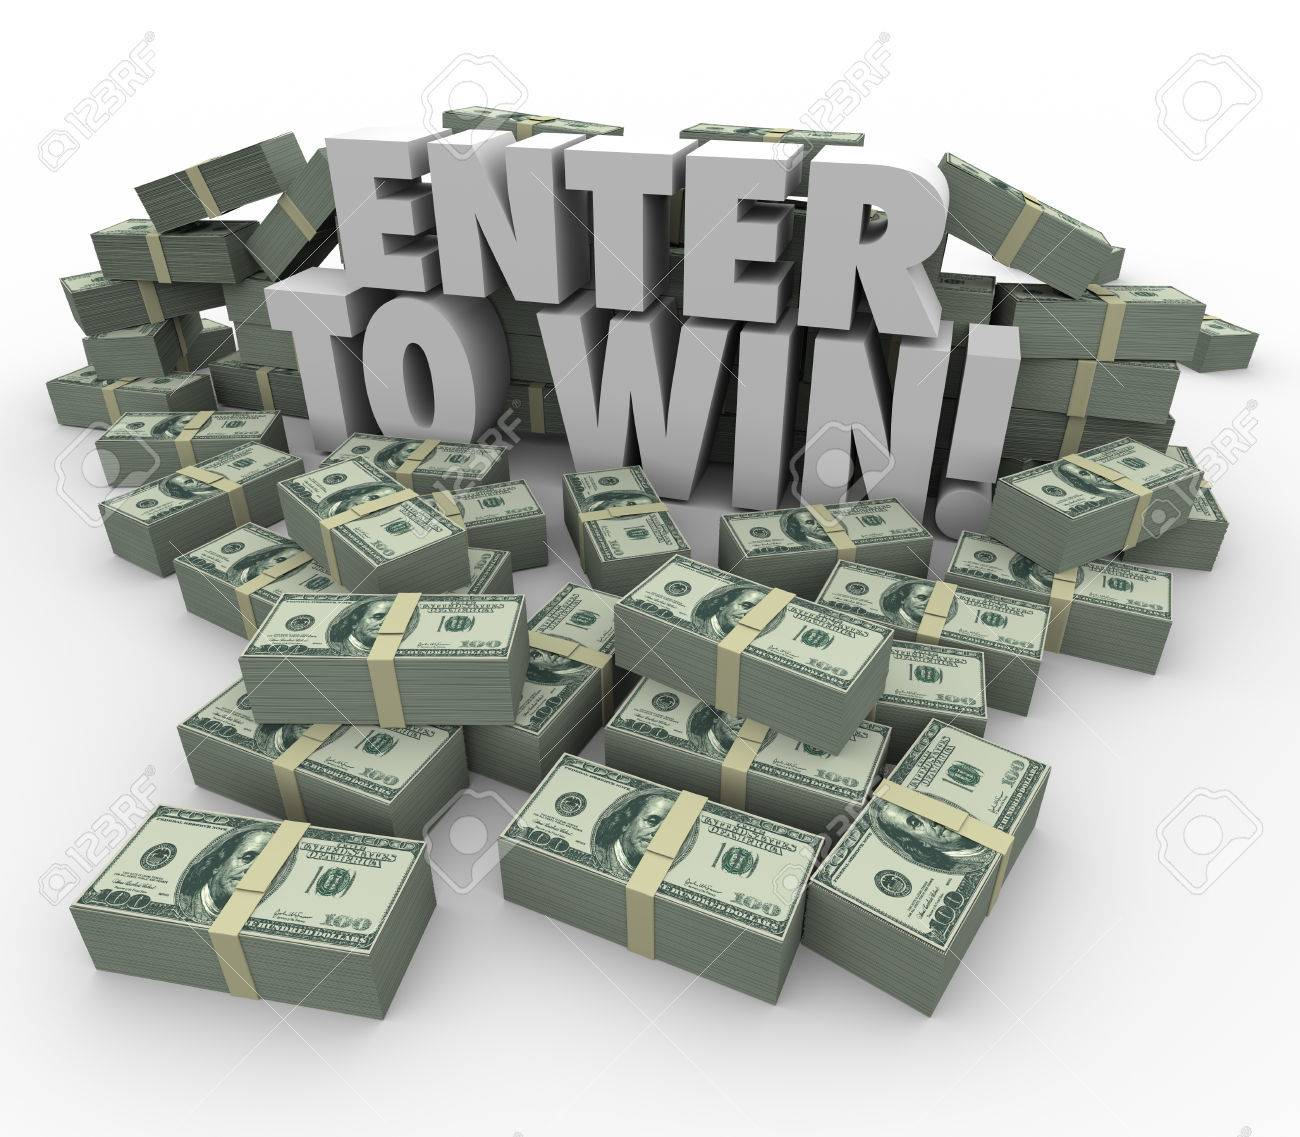 Enter to Win words in 3d letters surrounded by money, cash or..